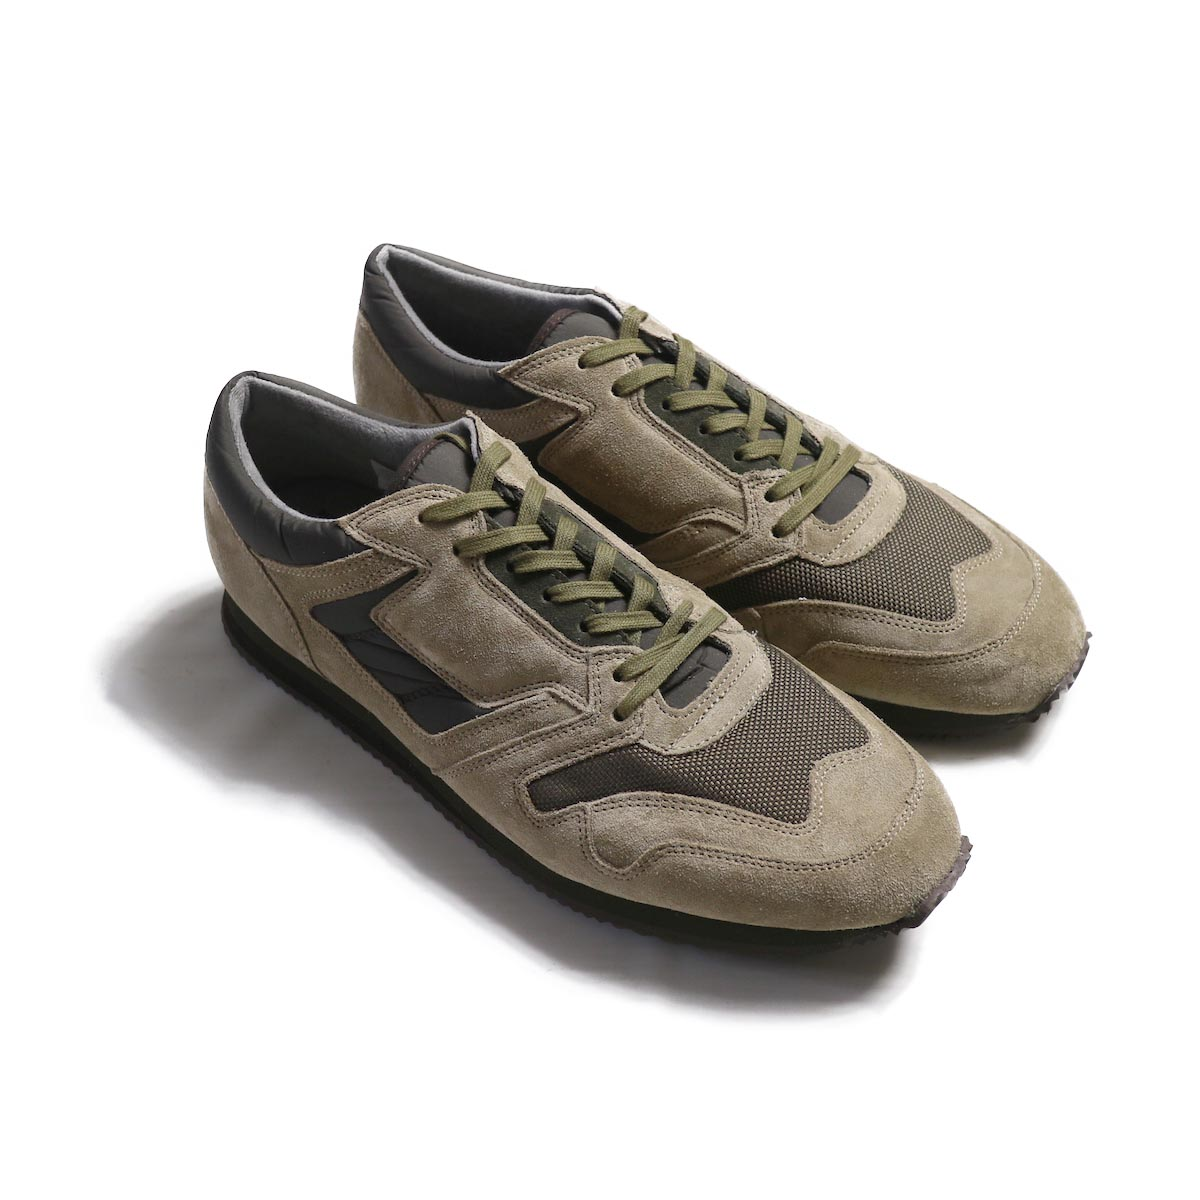 REPRODUCTION OF FOUND / BRITISH MILITARY TRAINER -Beige/Olive